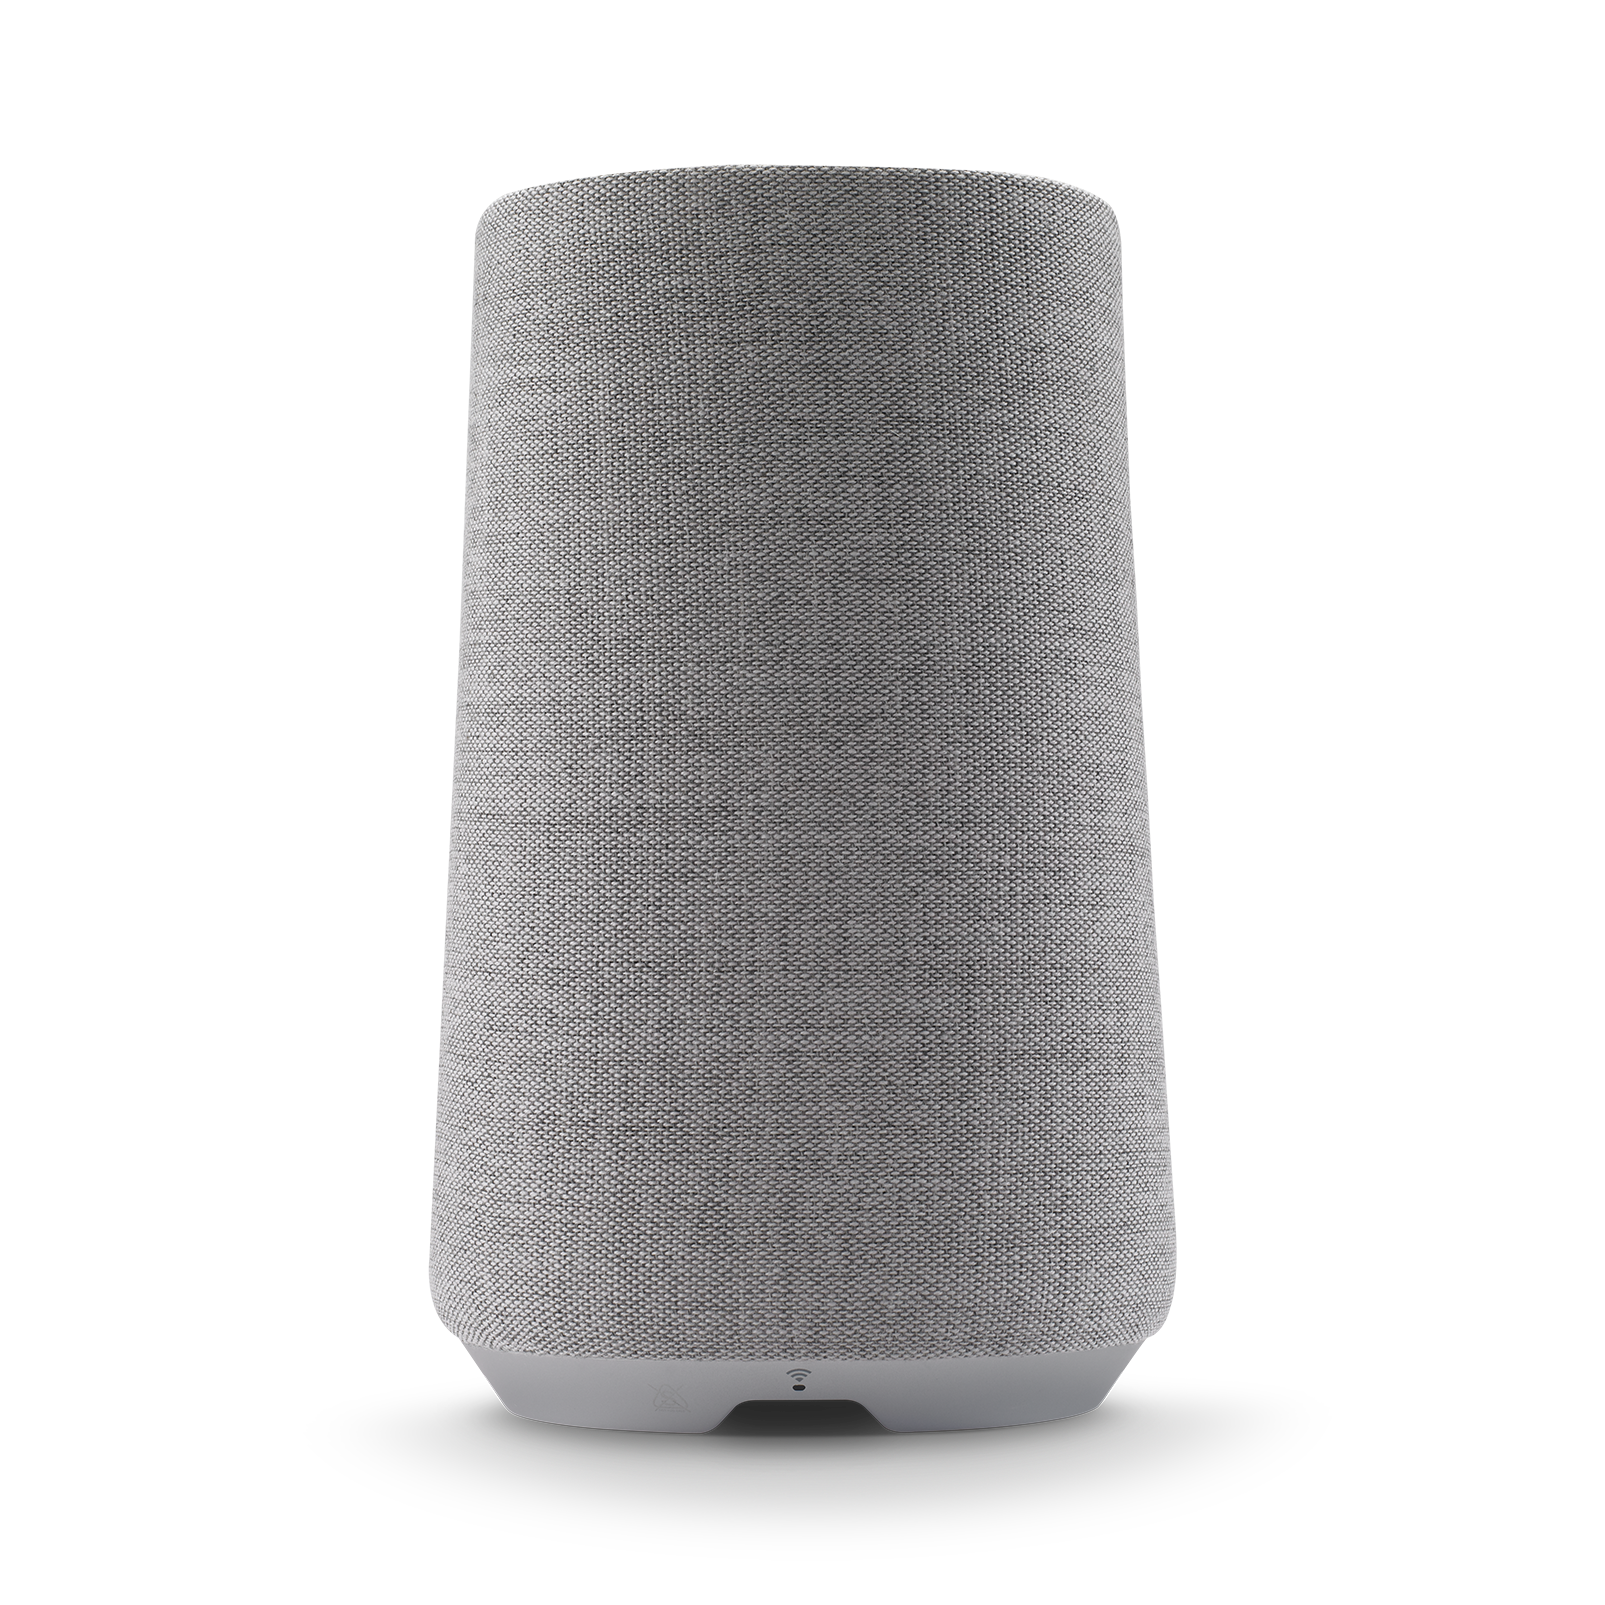 Harman Kardon Citation 100 - Grey - The smallest, smartest home speaker with impactful sound - Back